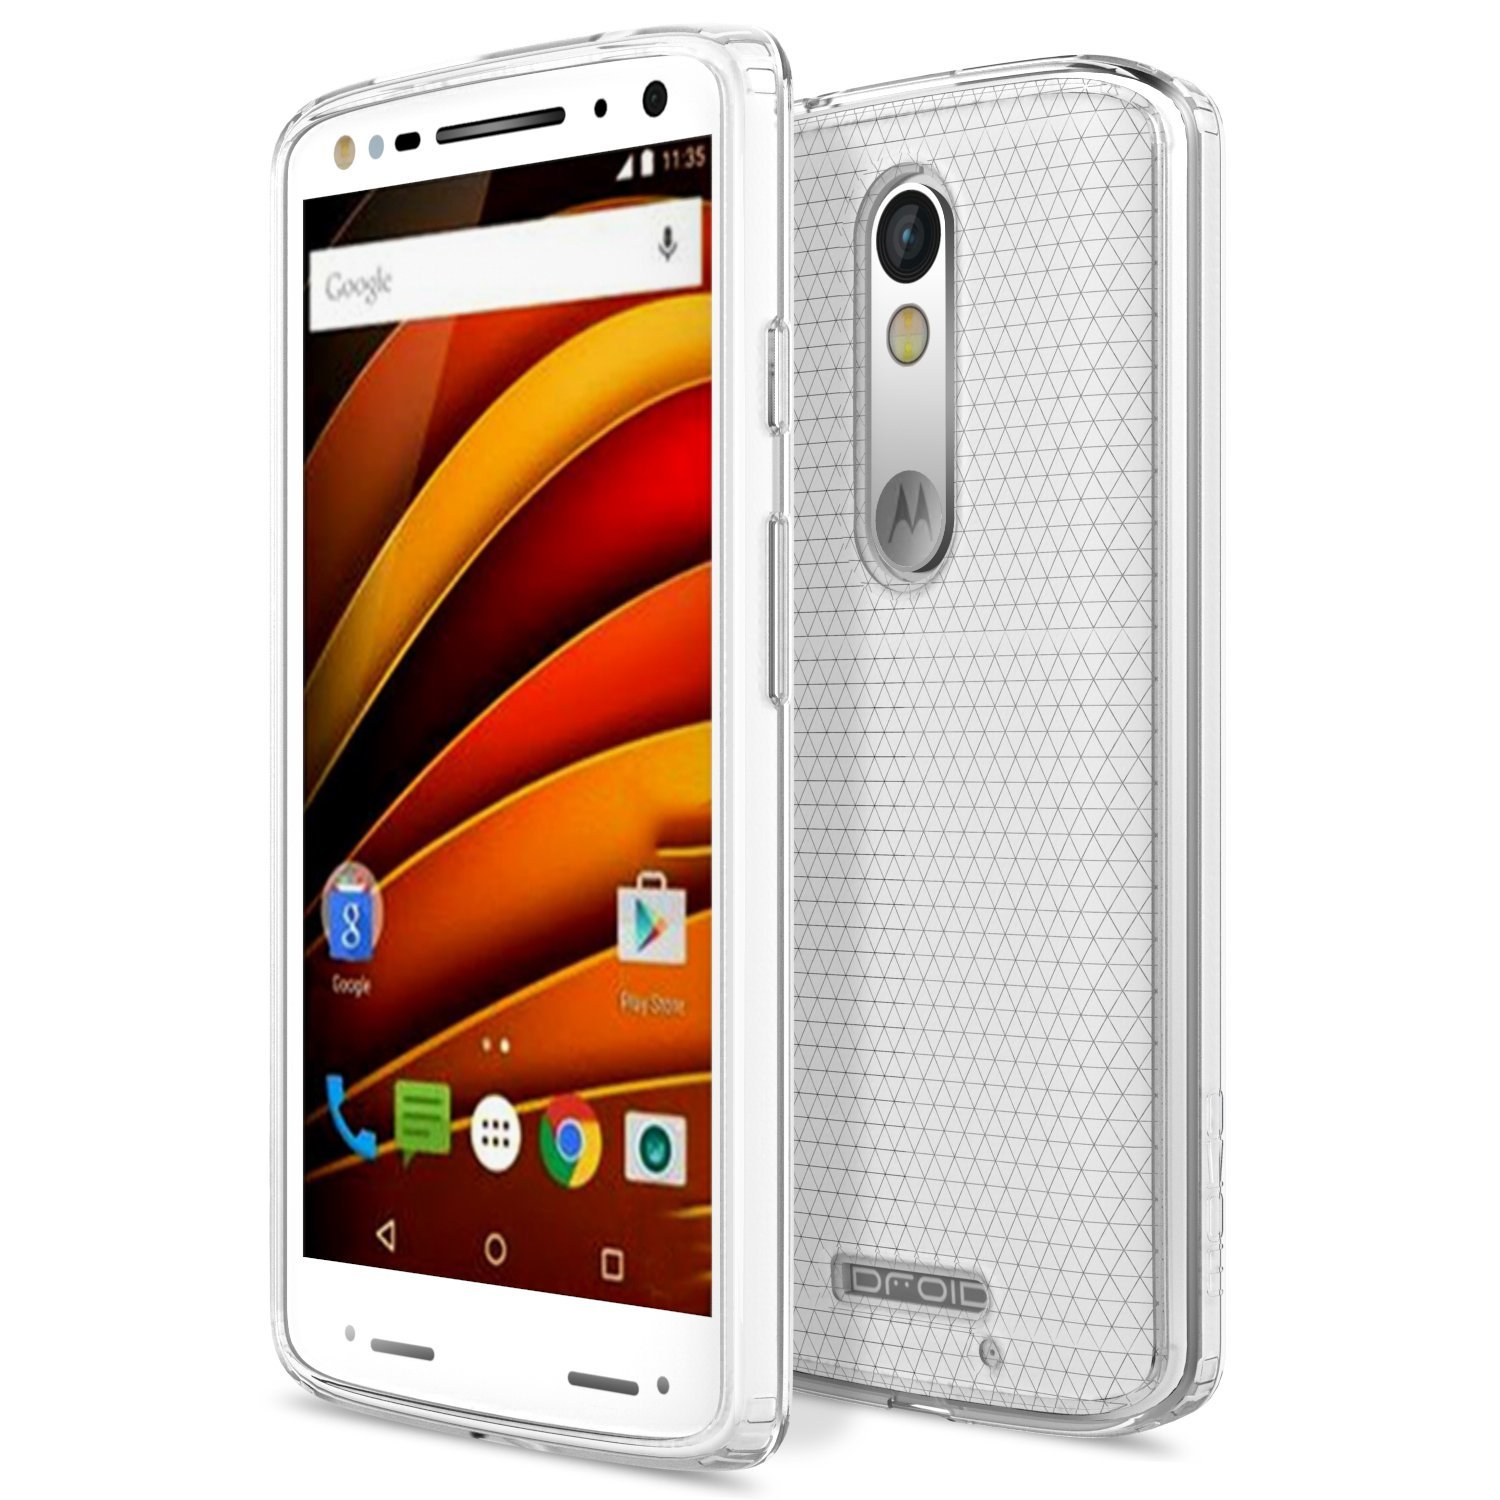 quality design e2e83 5e3ce Details about For Moto X Force Case Clear TPU Protective Case Cover For  moto X Force